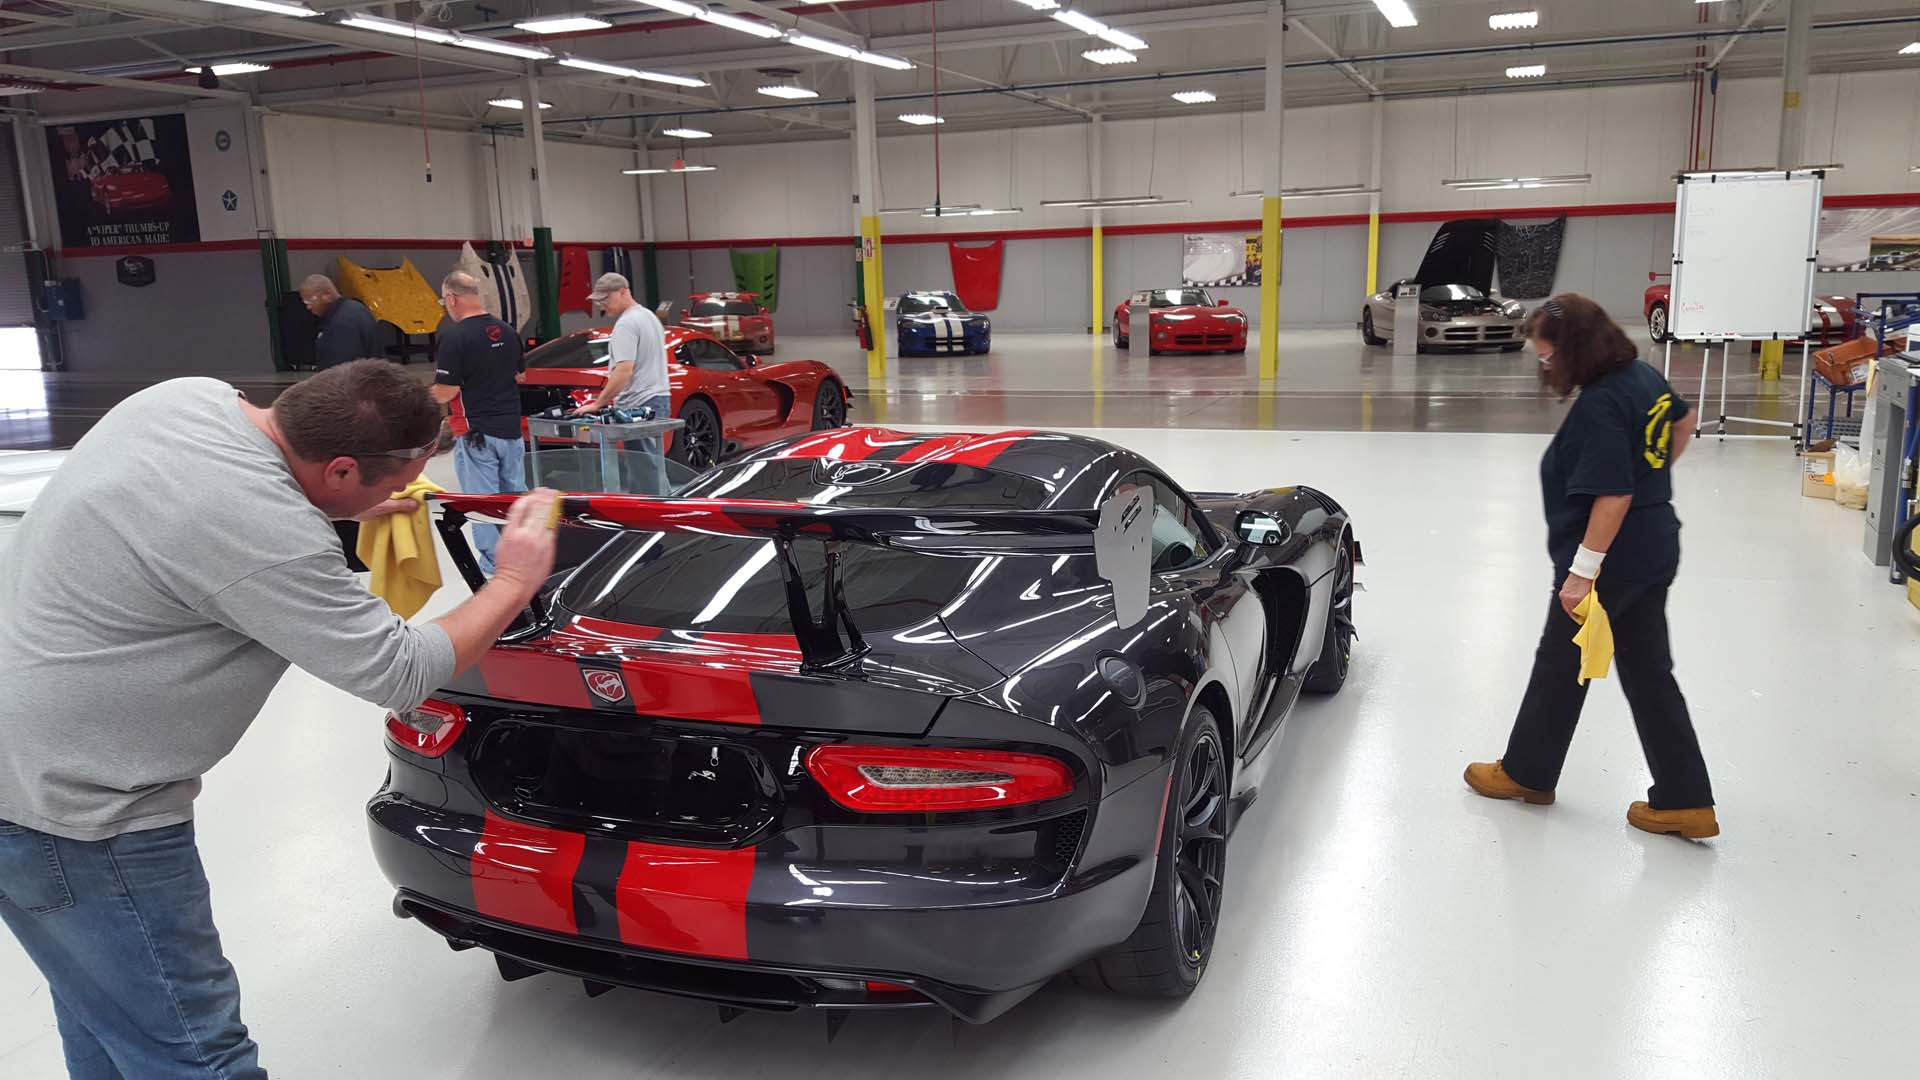 Every Viper is different, and they're all flawless. In this photo, Steven Showalter and Bonnie Marth give a new Viper ACR a close-up inspection. This pair works at Prefix, the company who paints and preps all of the Viper's body panels. They spend their day at Conner Avenue though, working under this flaw-revealing lighting and inspecting the paint and finish for any imperfections, no matter how small. In this photo, Showalter is making a final hand-buff of the rear spoiler, which he just finished re-buffing to remove some 'orange peel' in the paint.